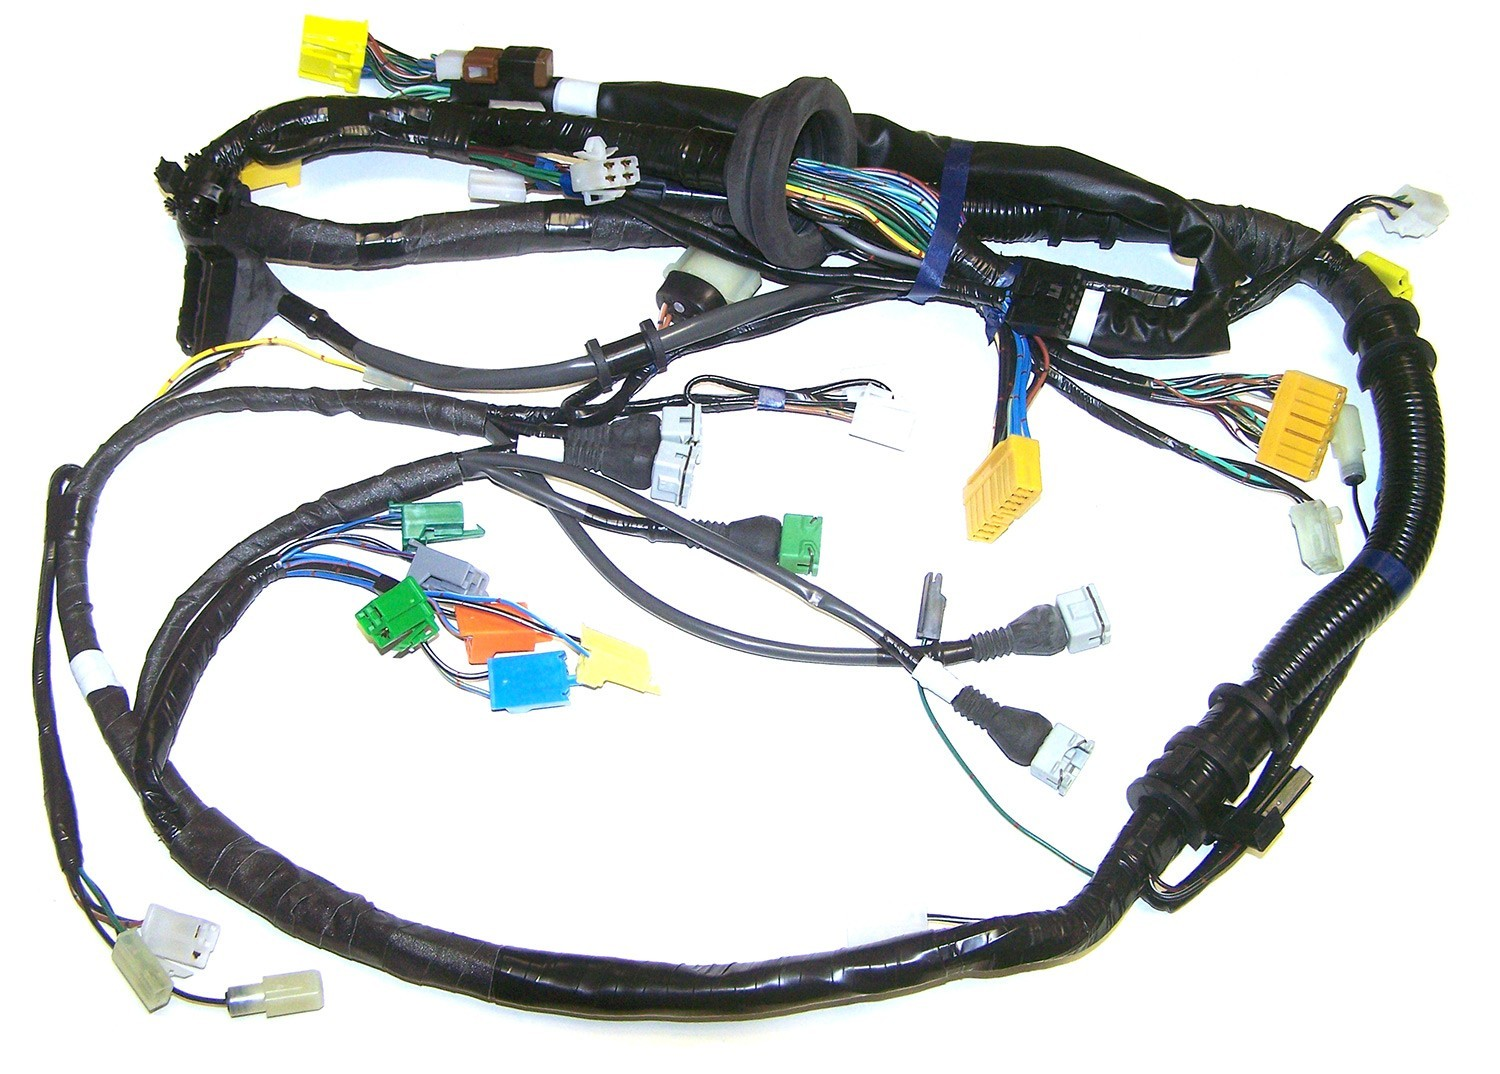 87-88 turbo rx7 engine wiring harness (n332-18-051k) 1967 chevelle engine wiring harness diagram di engine wiring harness